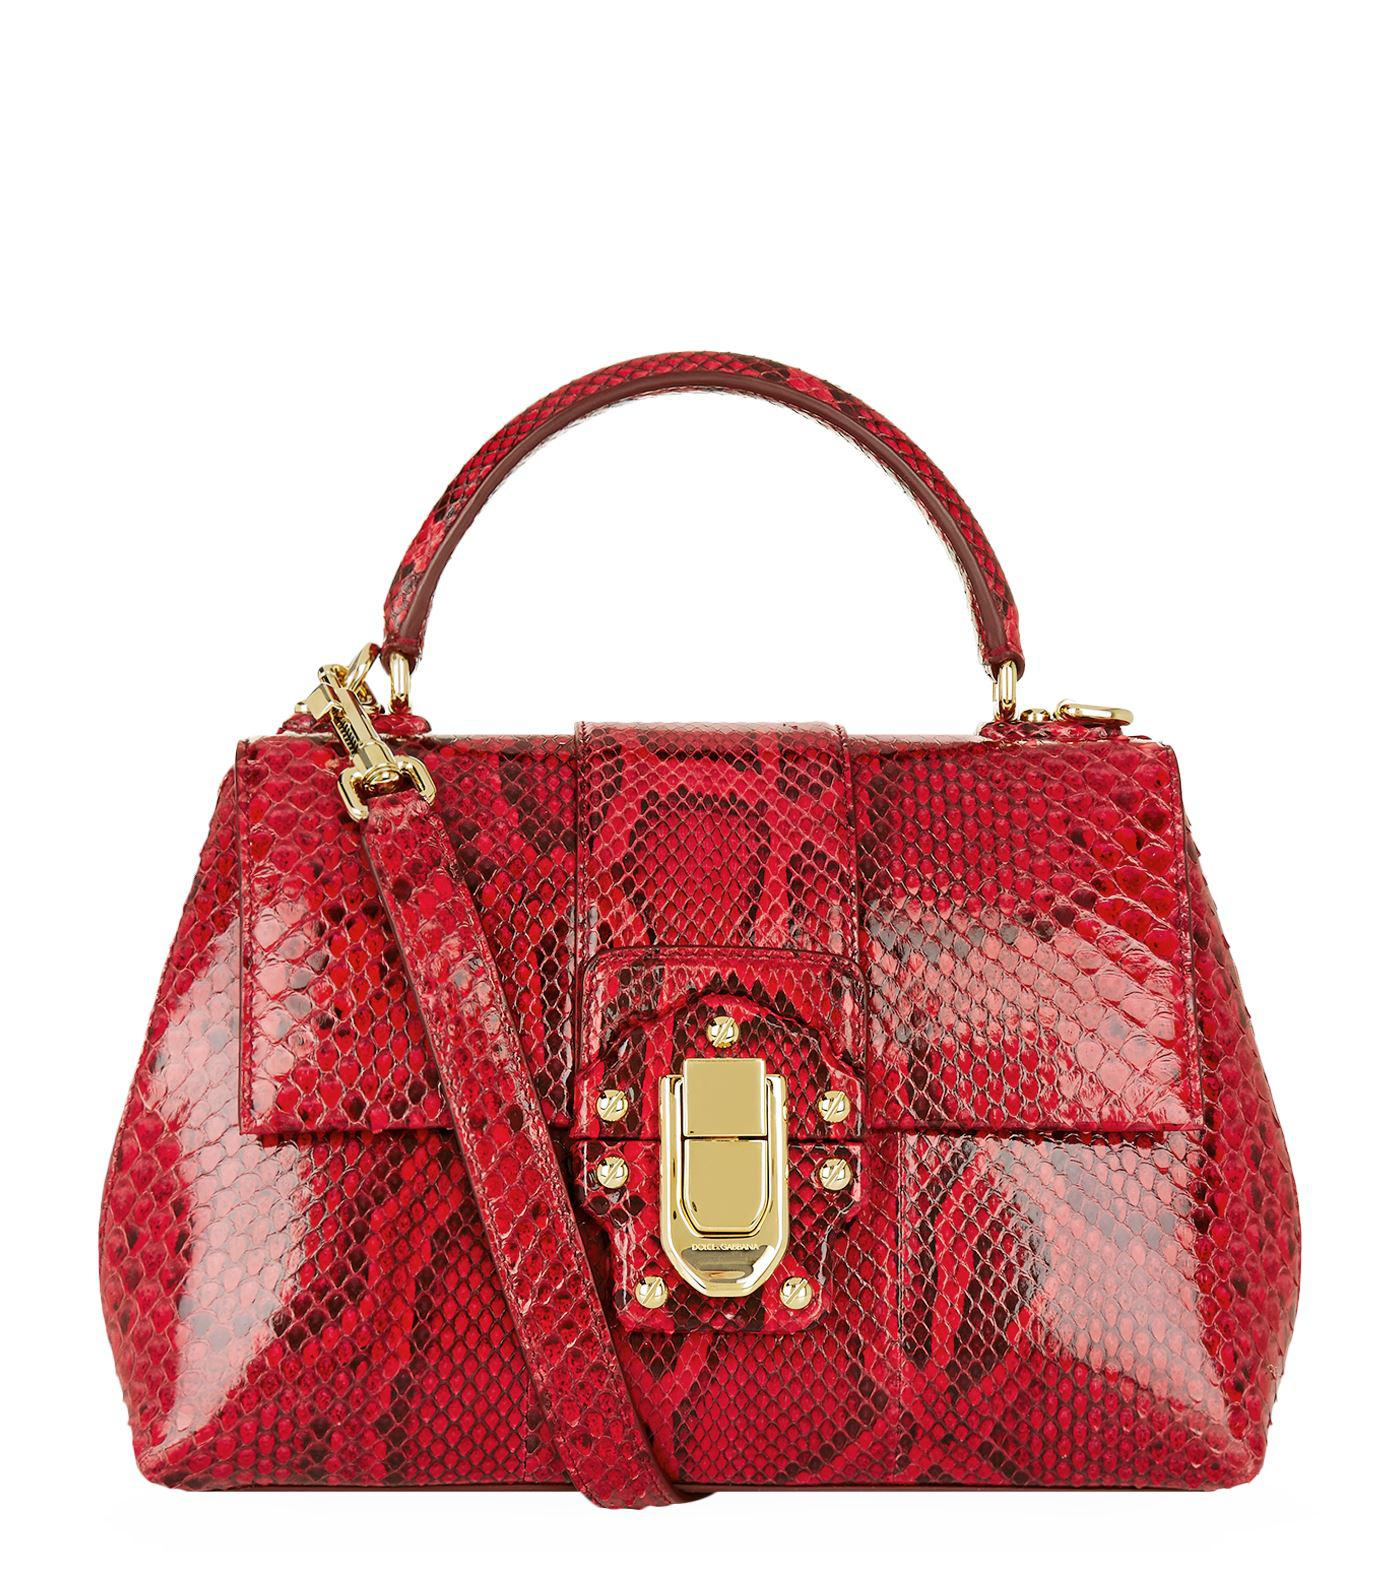 f73ee4bac053 Dolce   Gabbana Lucia Python Top Handle Bag in Red - Save 40.0% - Lyst